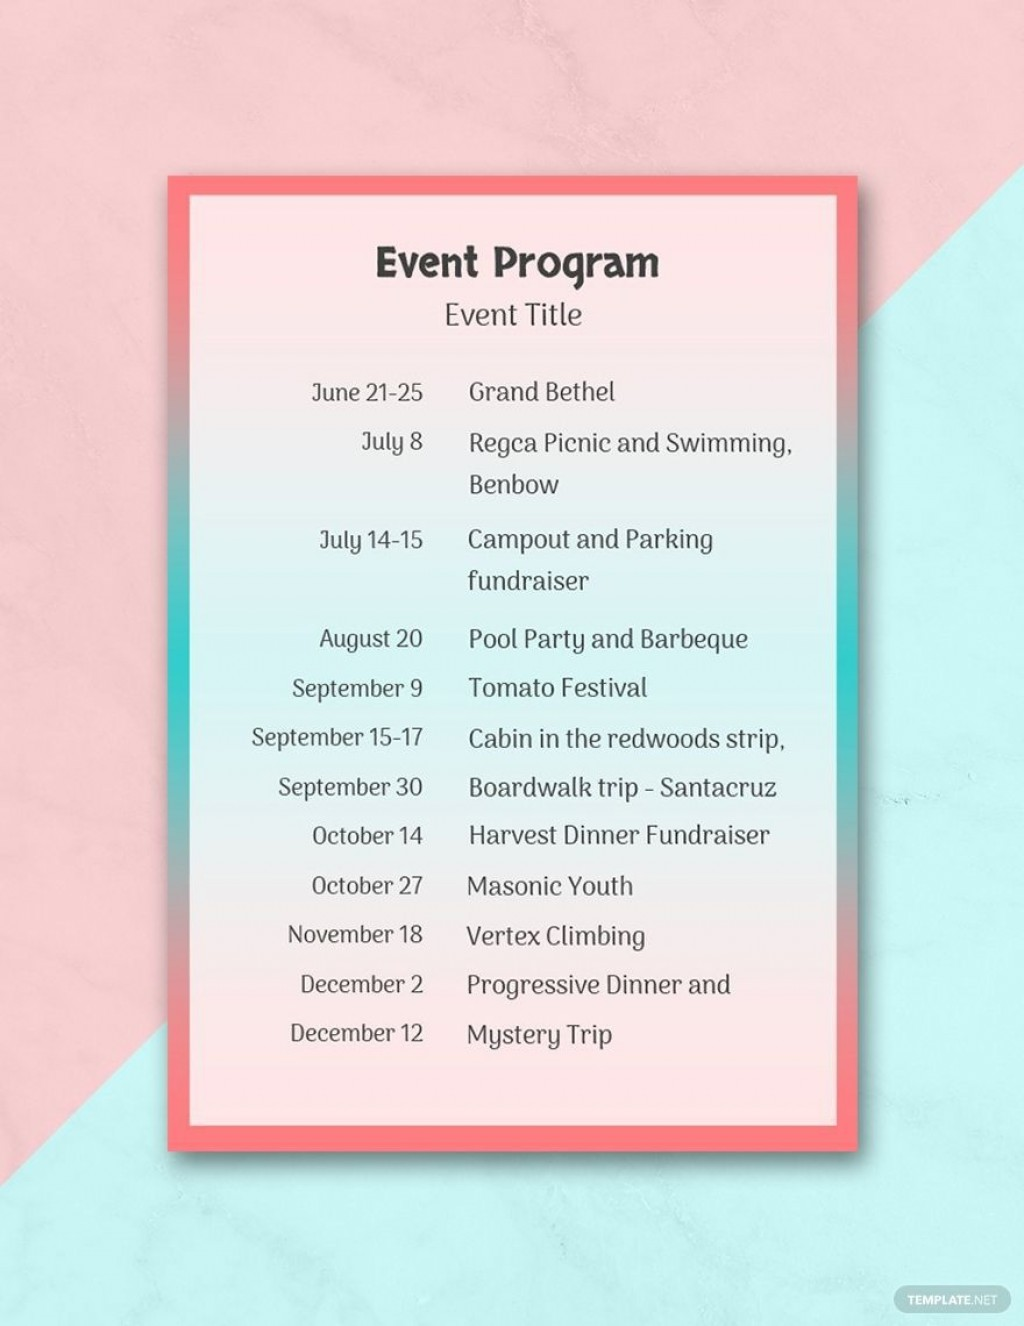 002 Unusual Free Event Program Template High Definition  Schedule Psd WordLarge